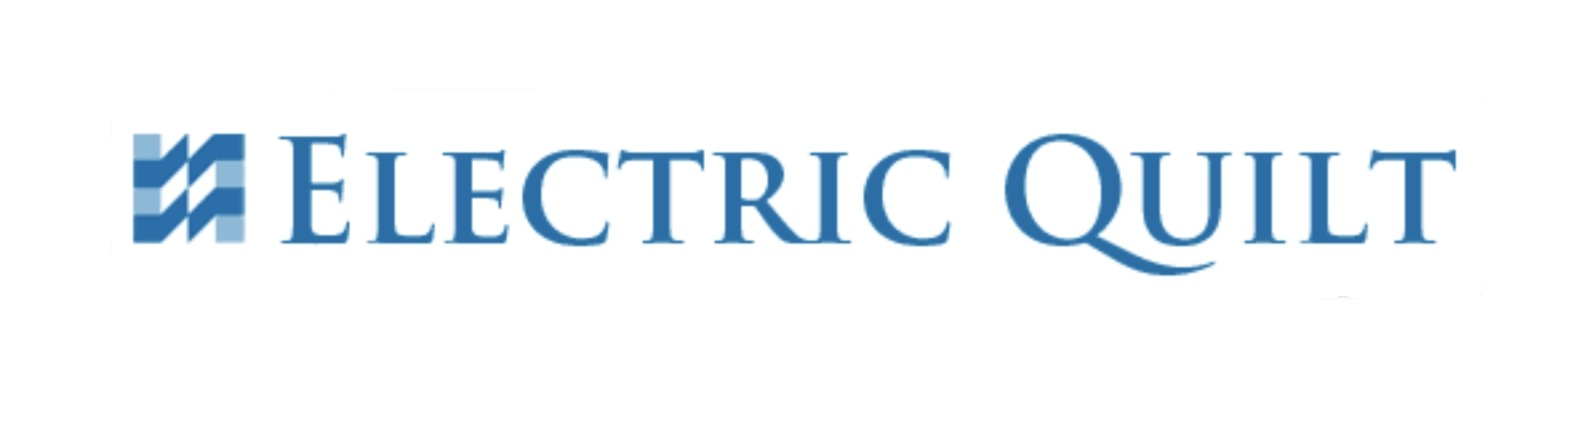 Electric Quilt coupon code